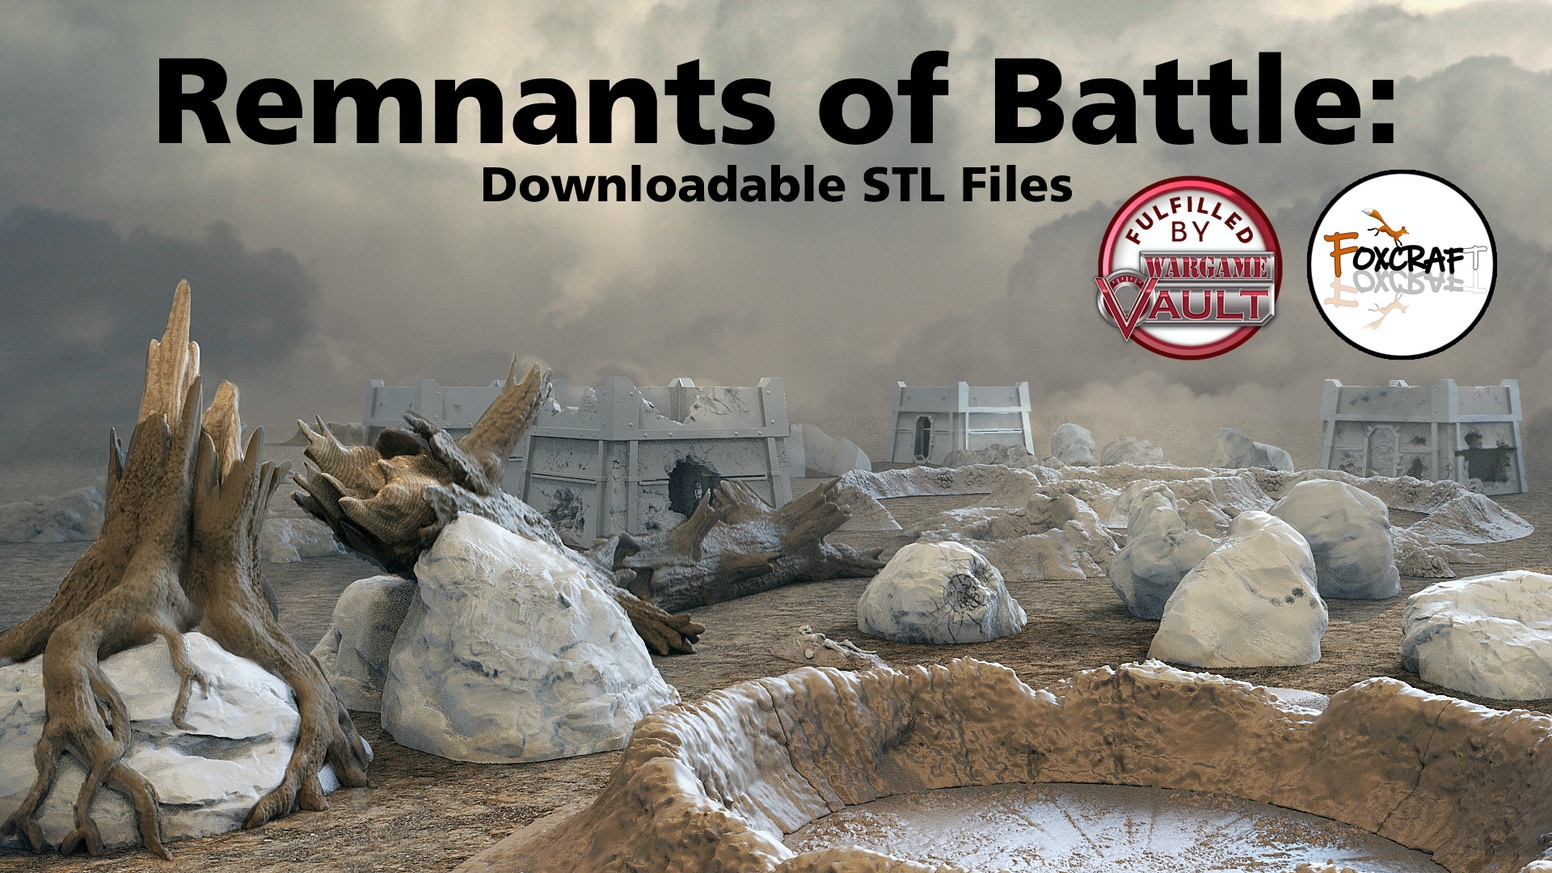 Downloadable STL Files for battlefield terrain.